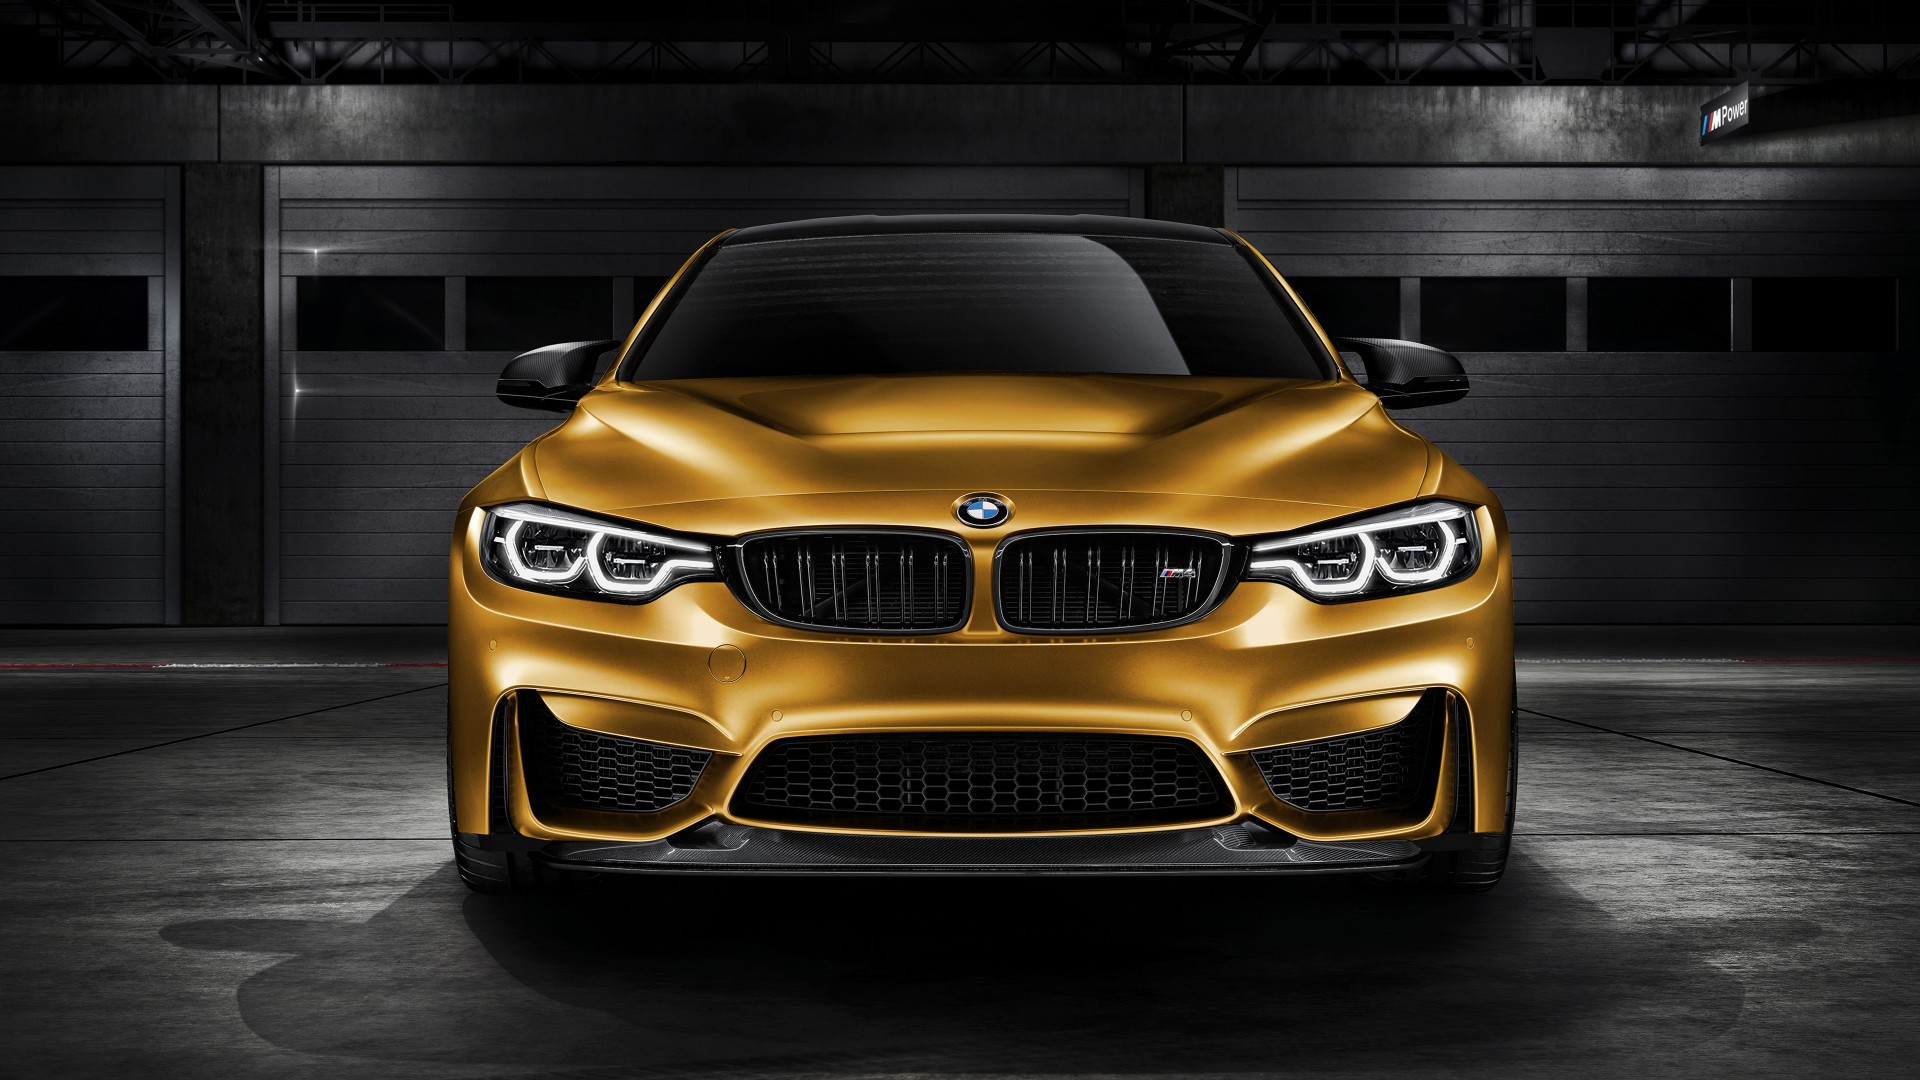 Bmw M4 Gts Sunburstgold 2018 4k Wallpaper Hd Car